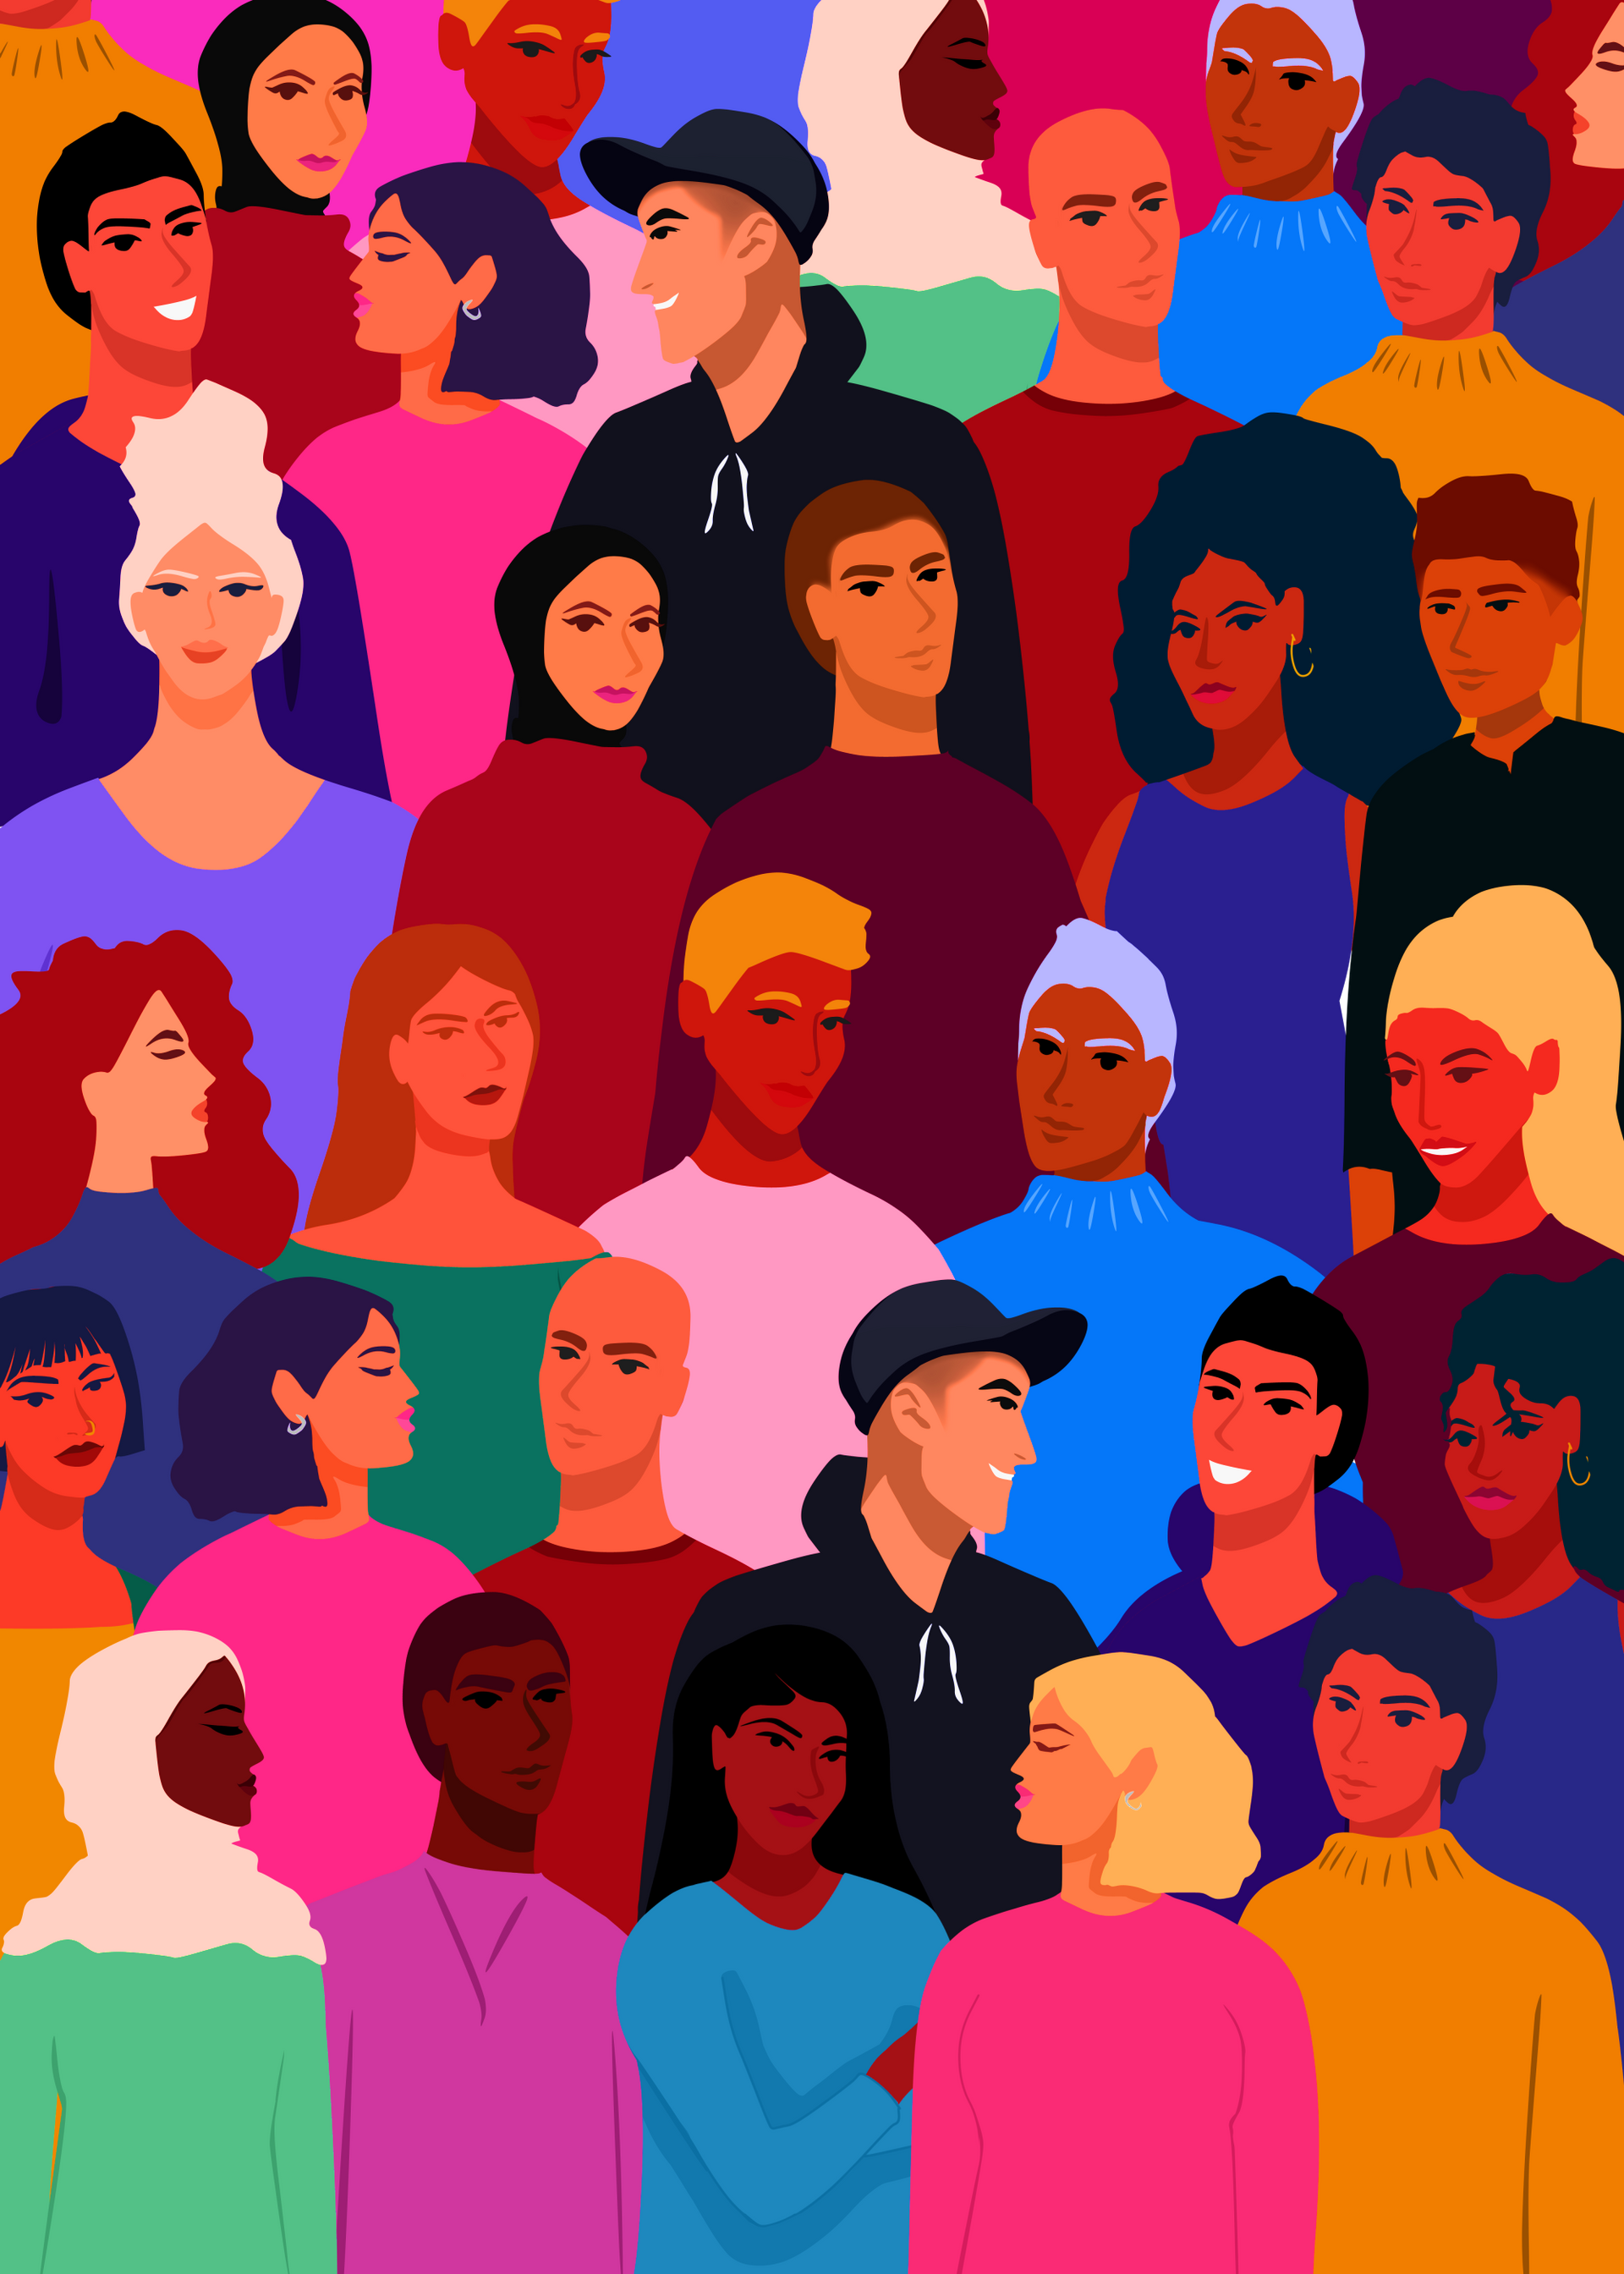 People-Separata-small.png